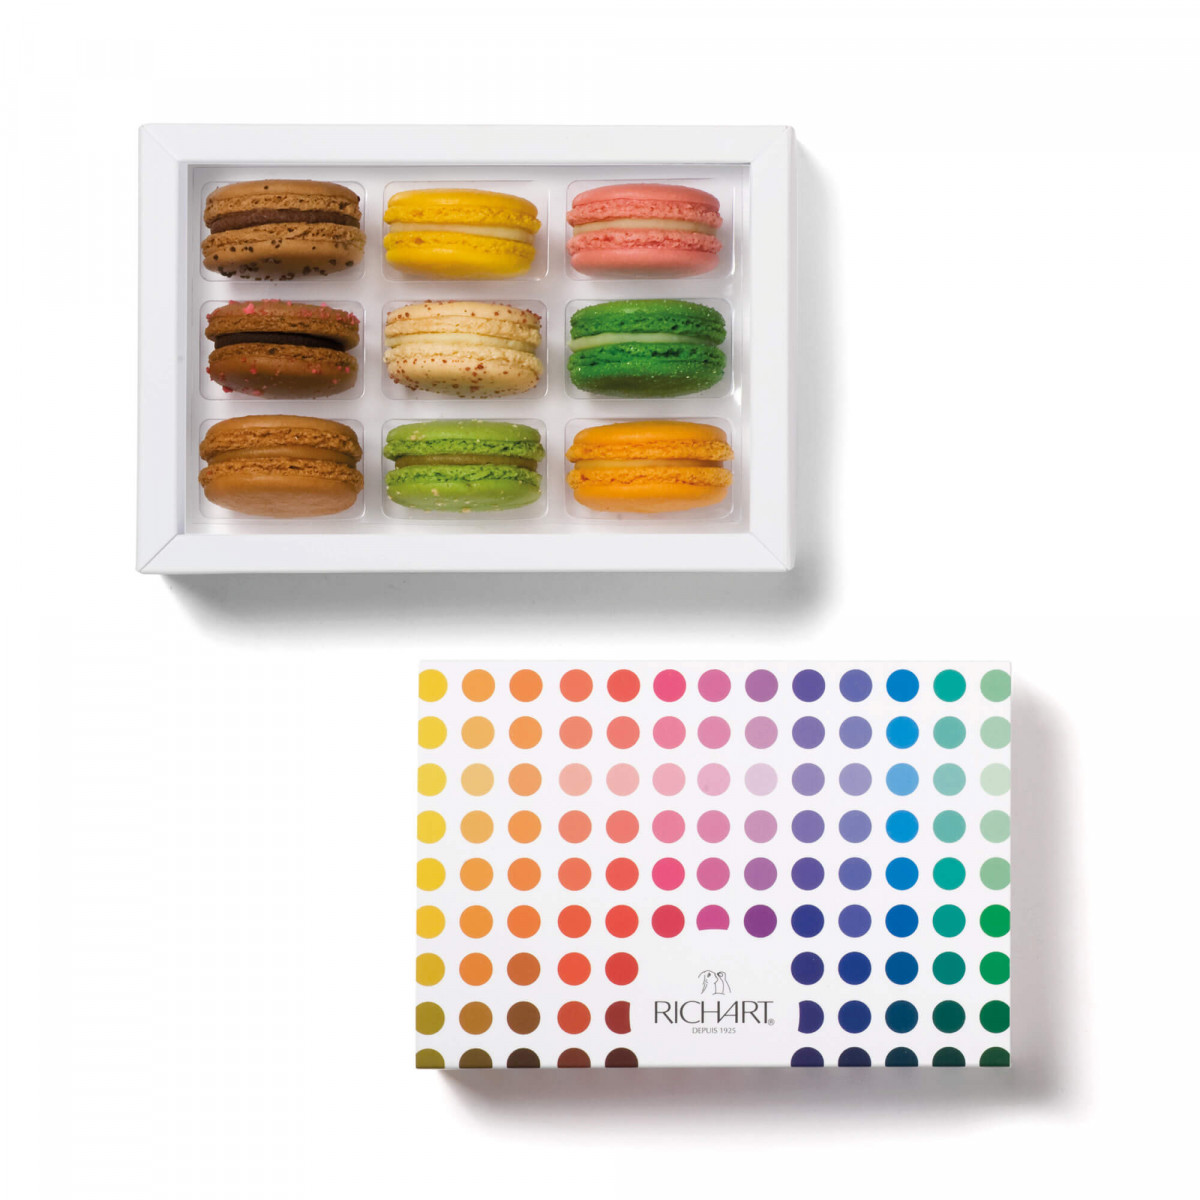 Timeless Box of 9 French macarons